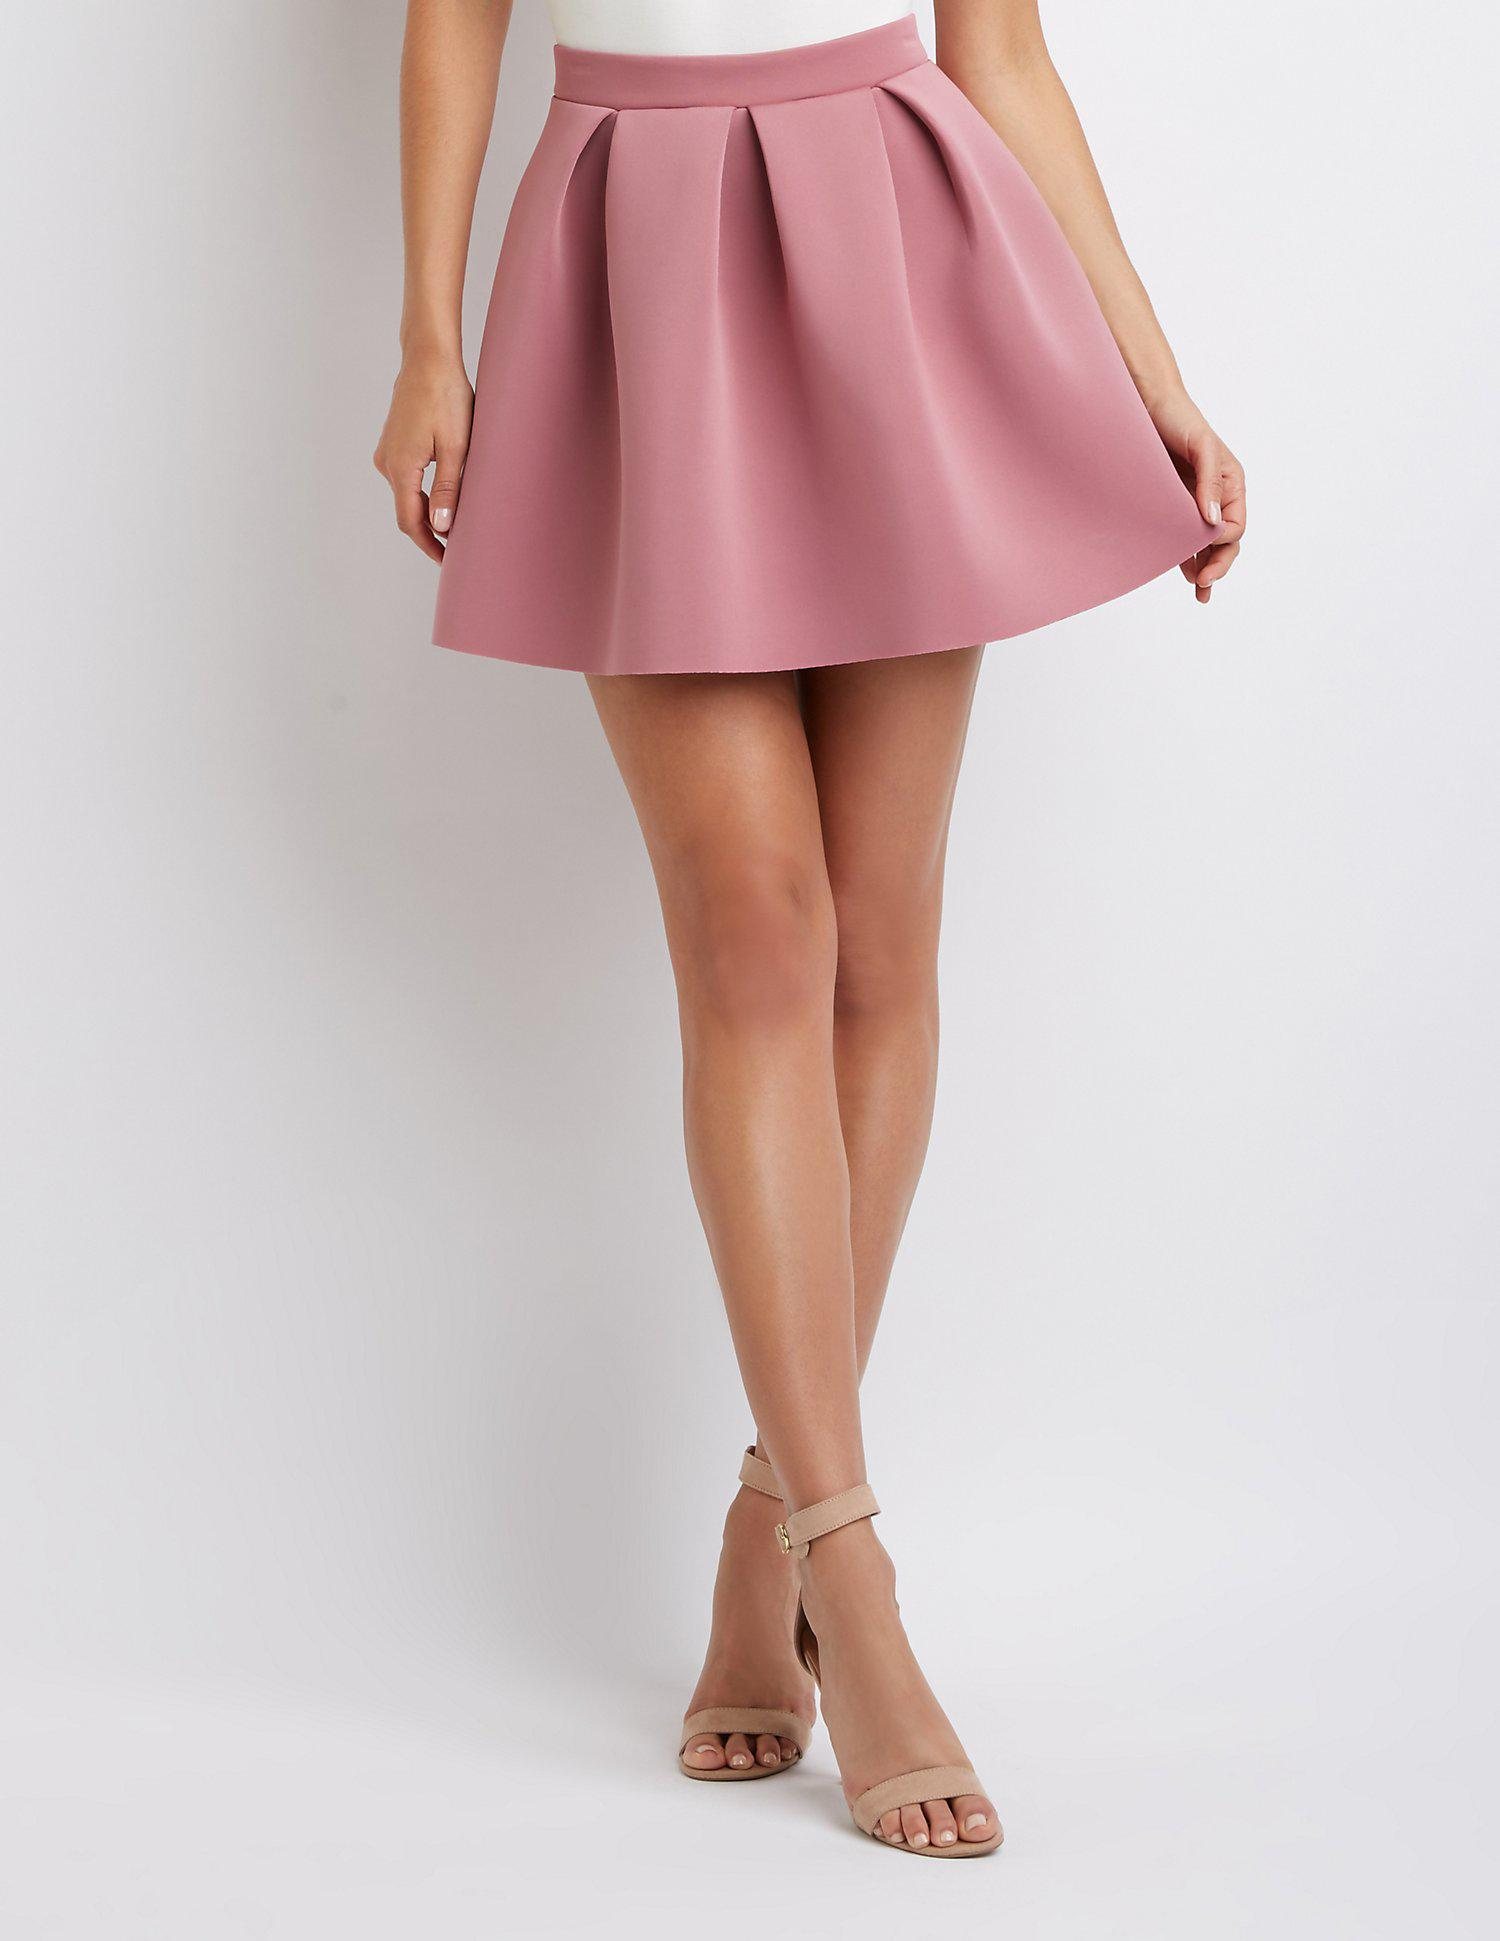 aad1cb38c4 Lyst - Charlotte Russe Pleated Scuba Skater Skirt in Pink - Save 41%